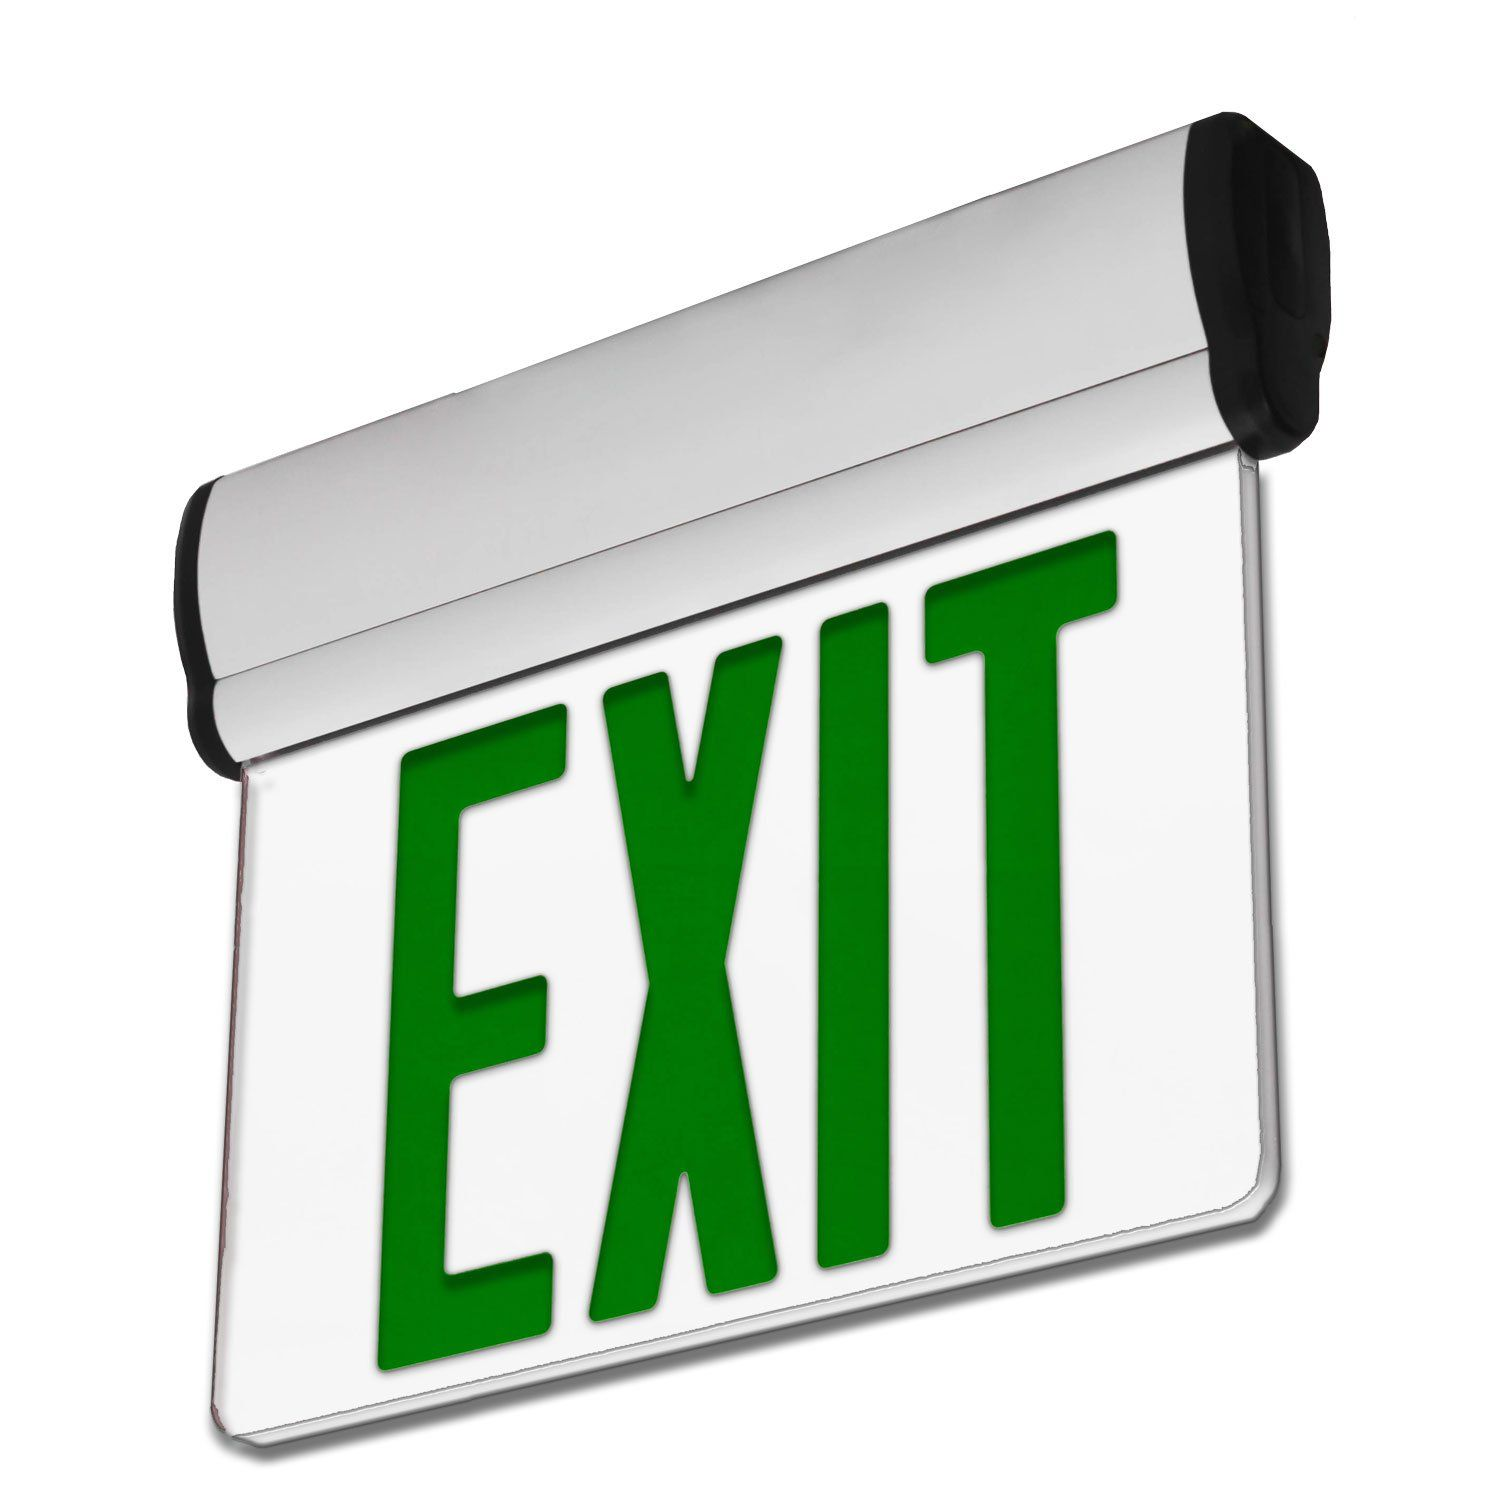 Lfi Lights 2 Pack Ul Certified Hardwired Green Led Edge Light Exit Sign Rotating Panel Battery Backup Elrtgx2 Visit T With Images Exit Sign Edge Lighting Green Led